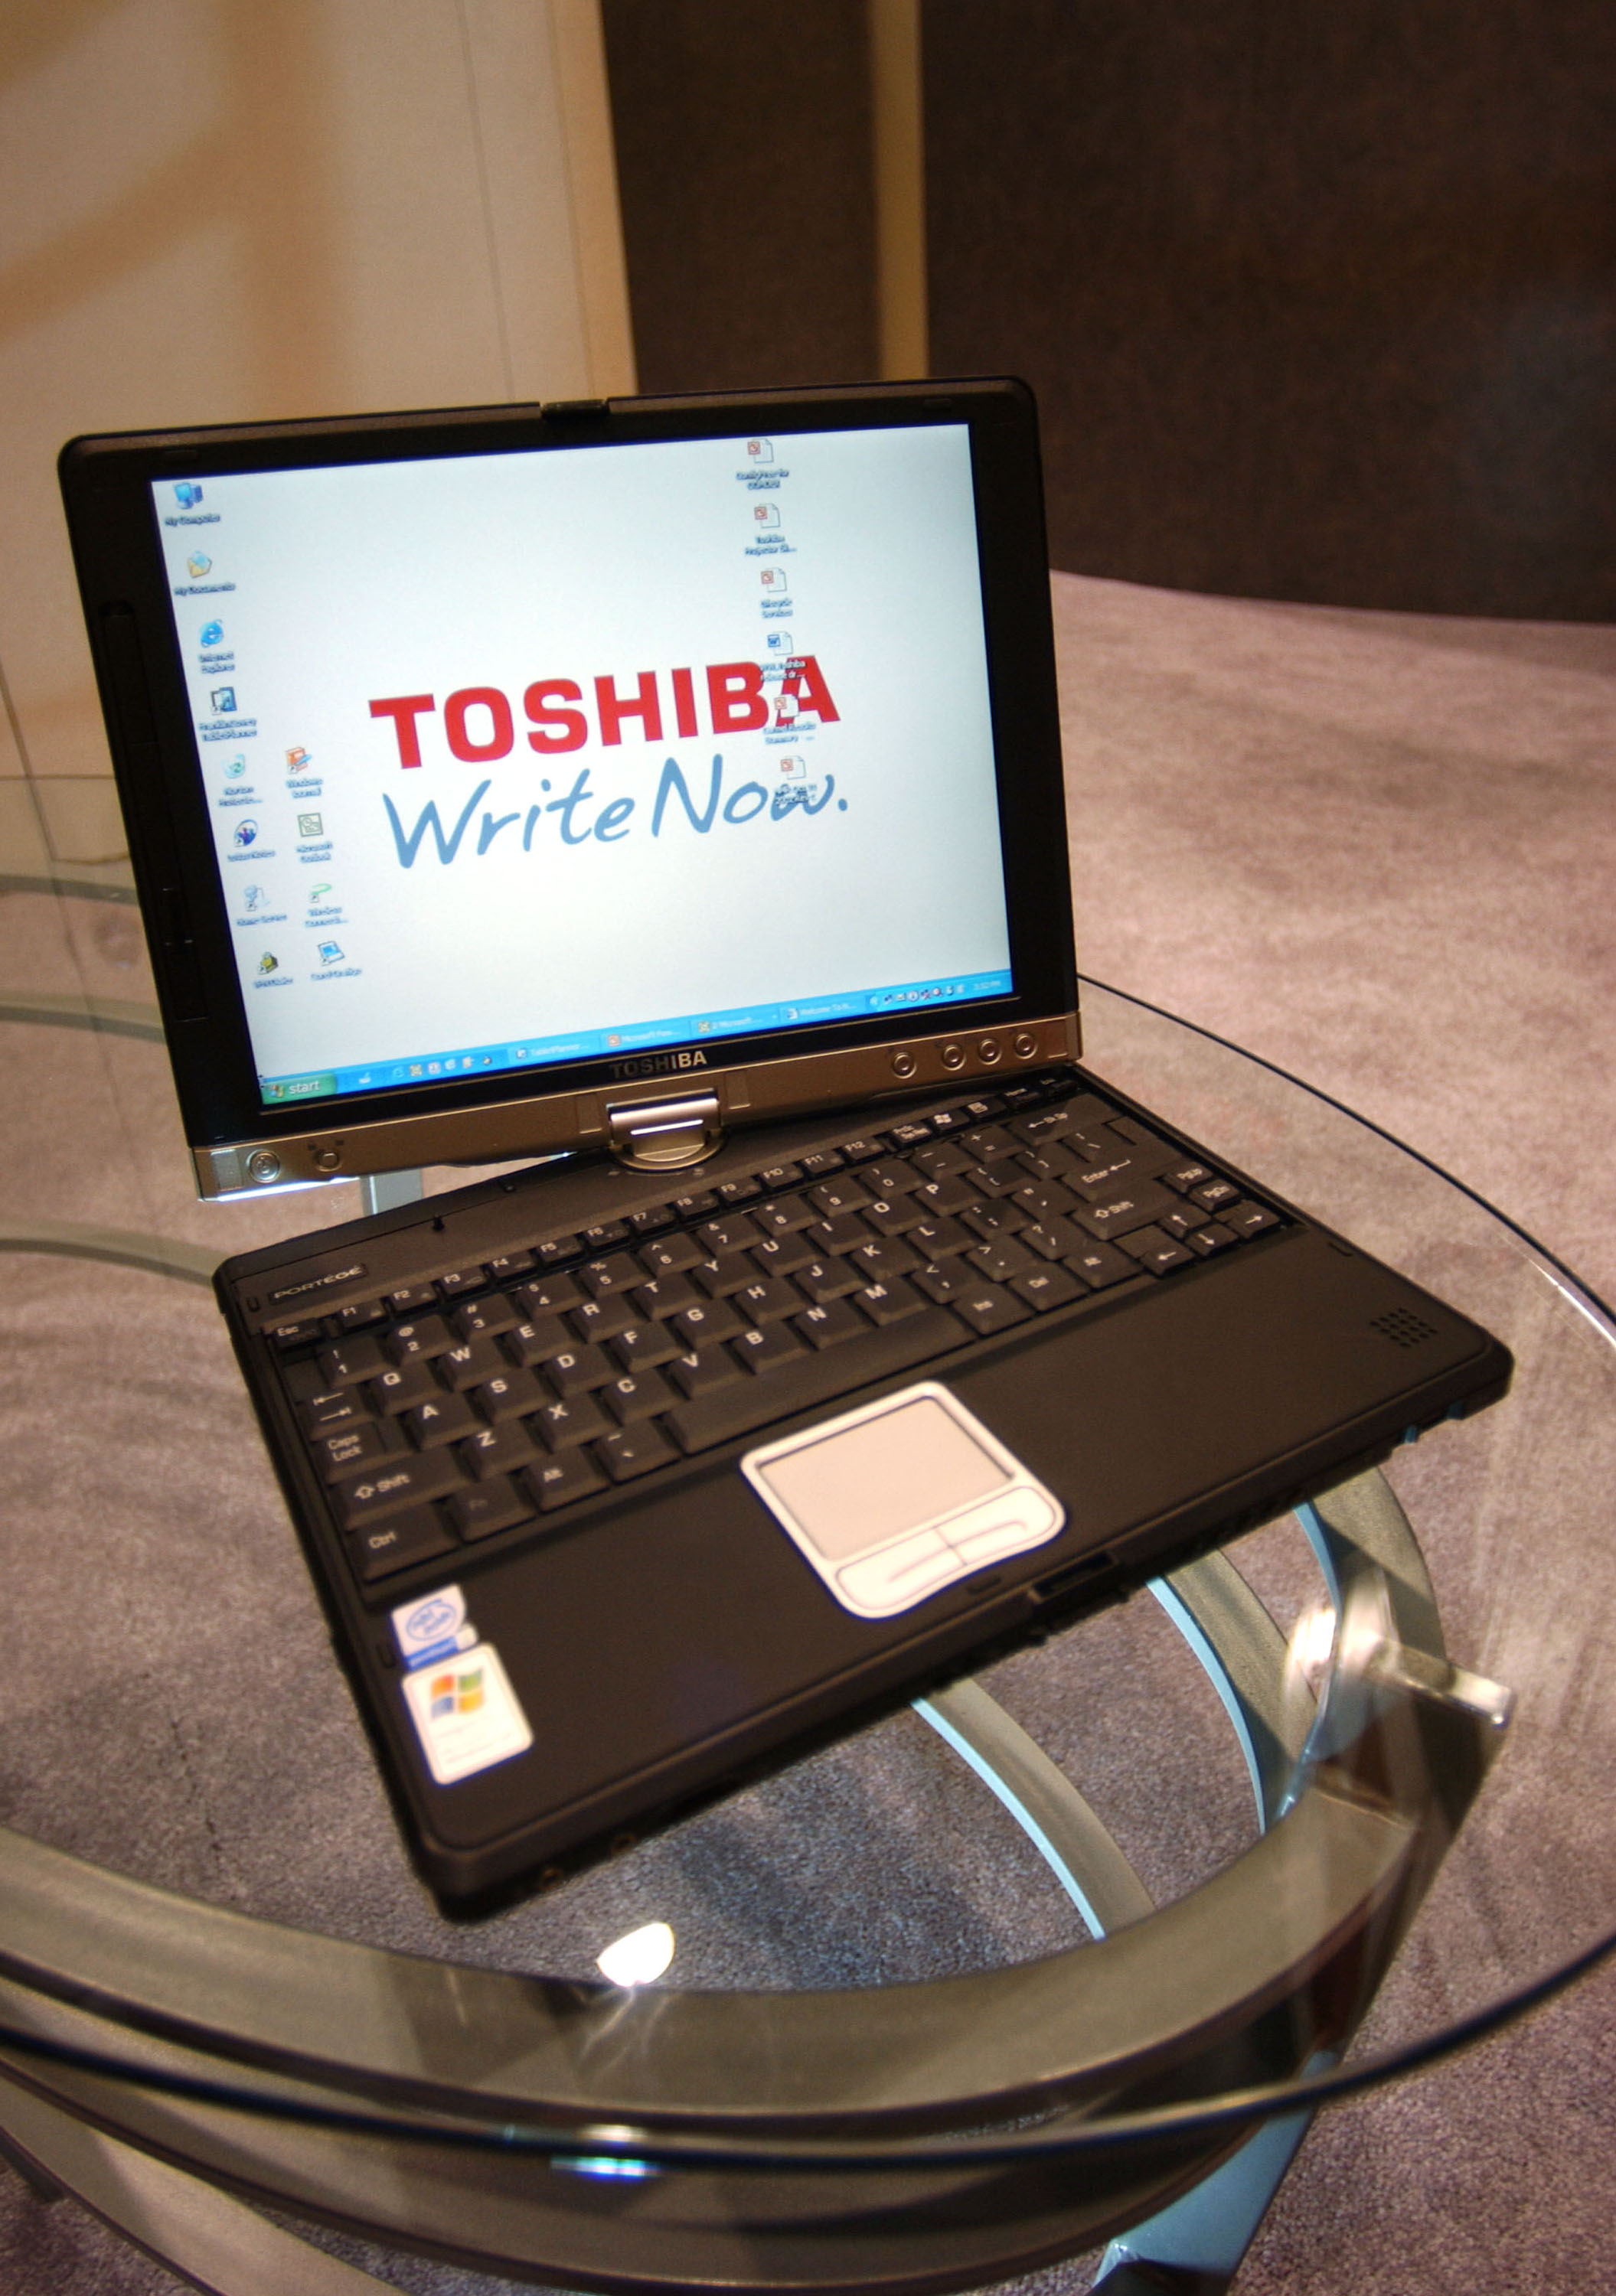 How to Access the Built-in Webcam on a Toshiba Laptop